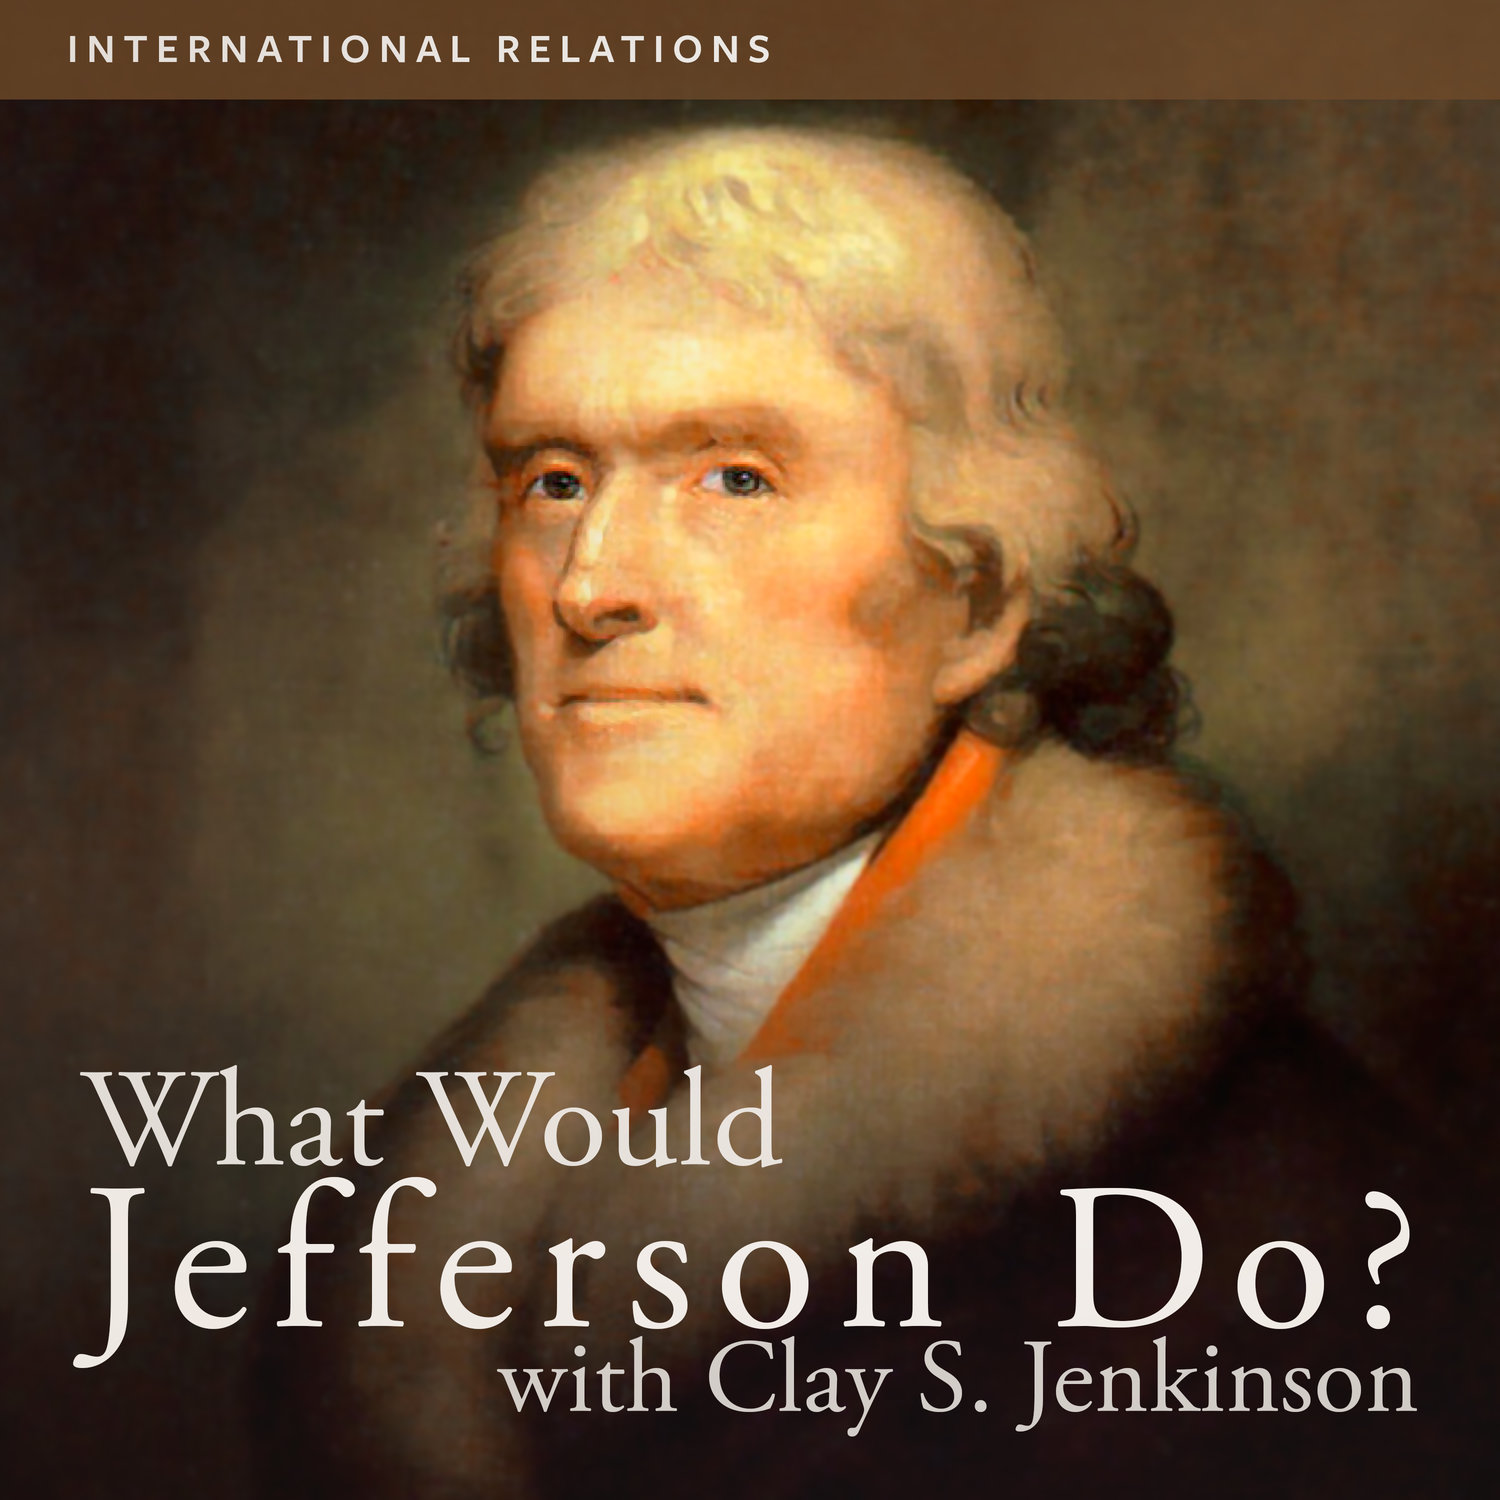 International Relations — The Thomas Jefferson Hour